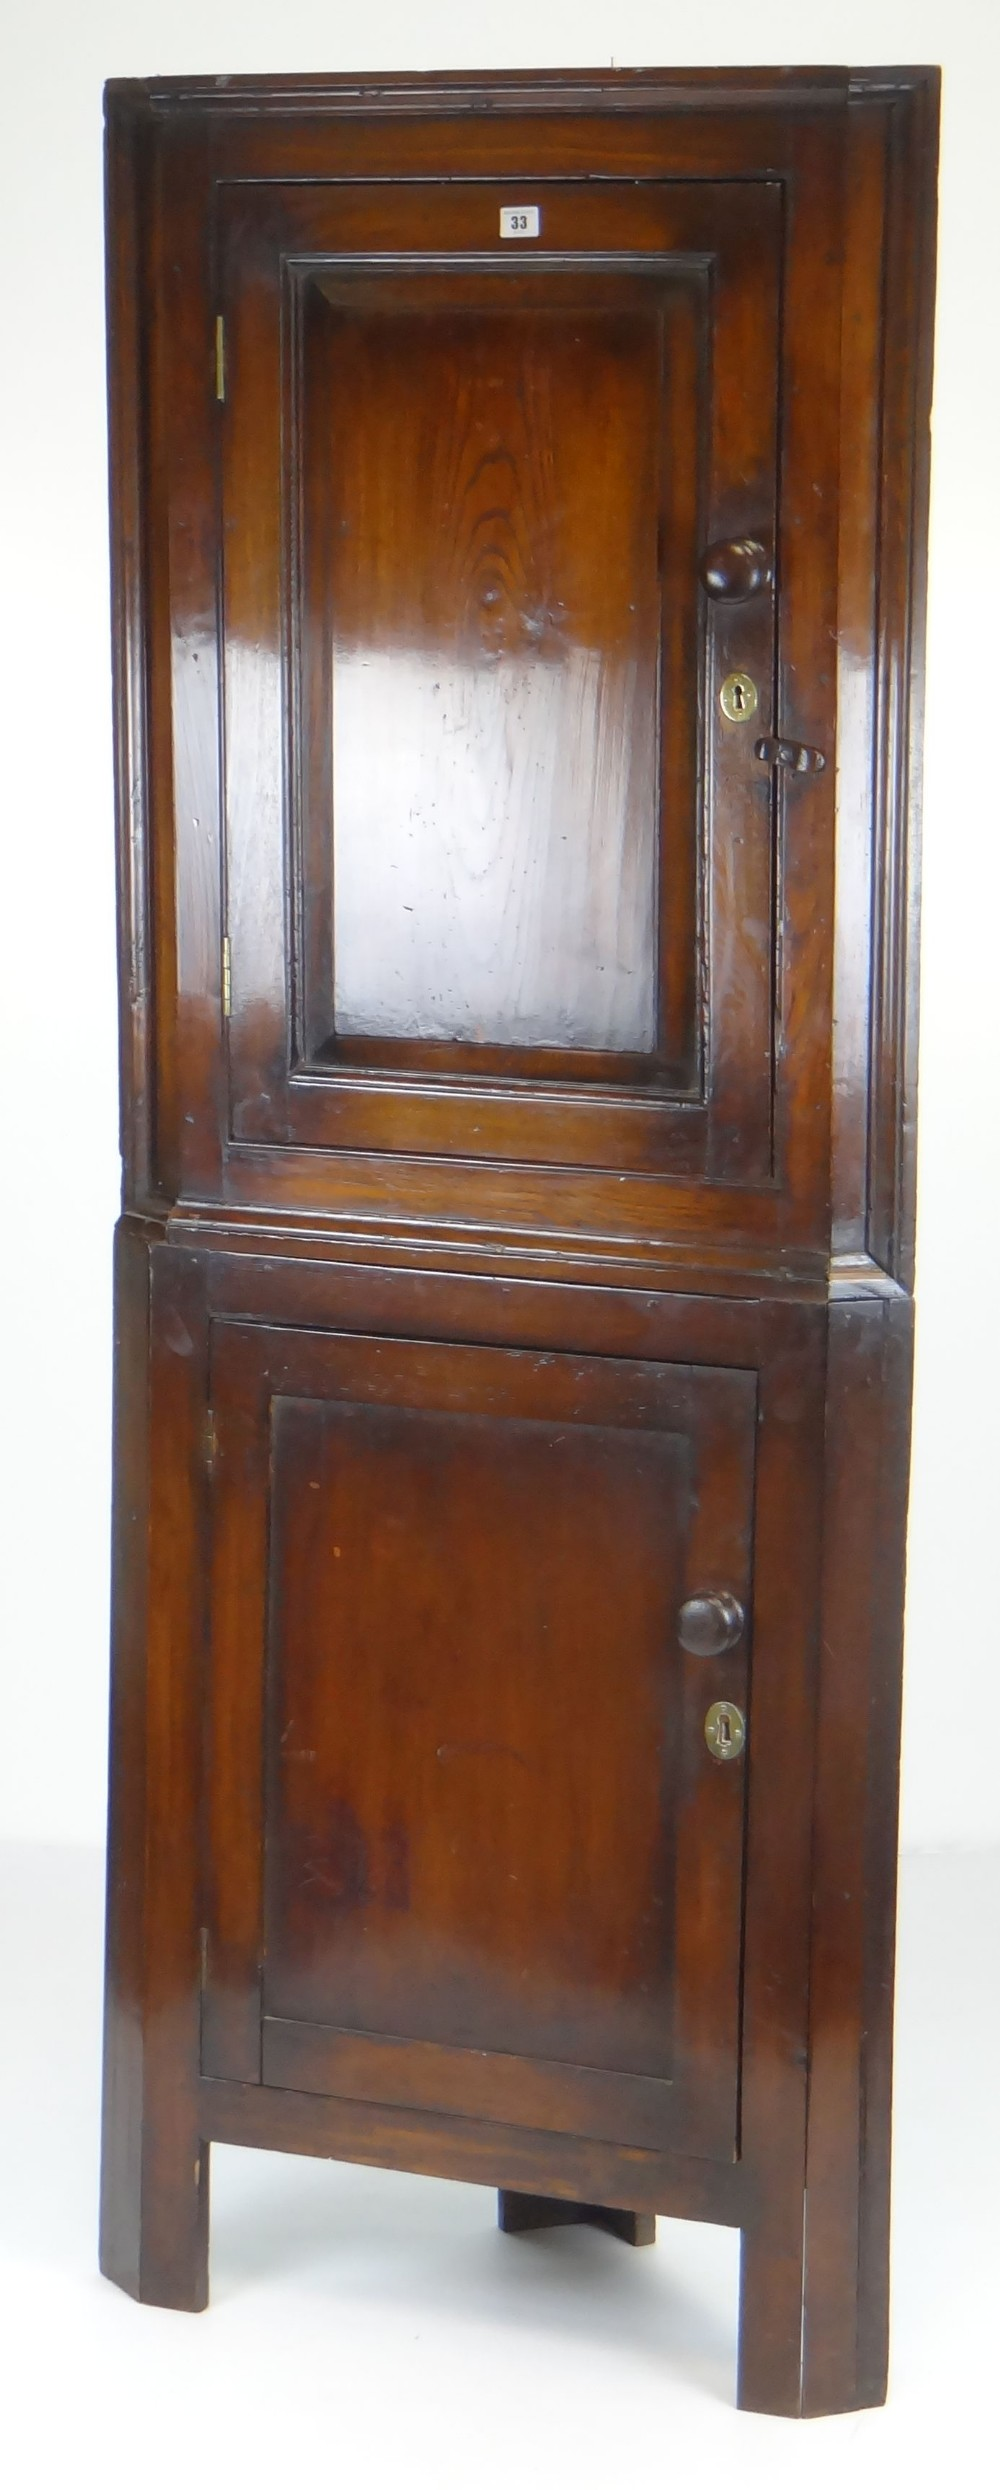 Lot 33 - ANTIQUE STANDING TWO STAGE CORNER BLIND-CUPBOARD the top section with panelled door in elm, turned